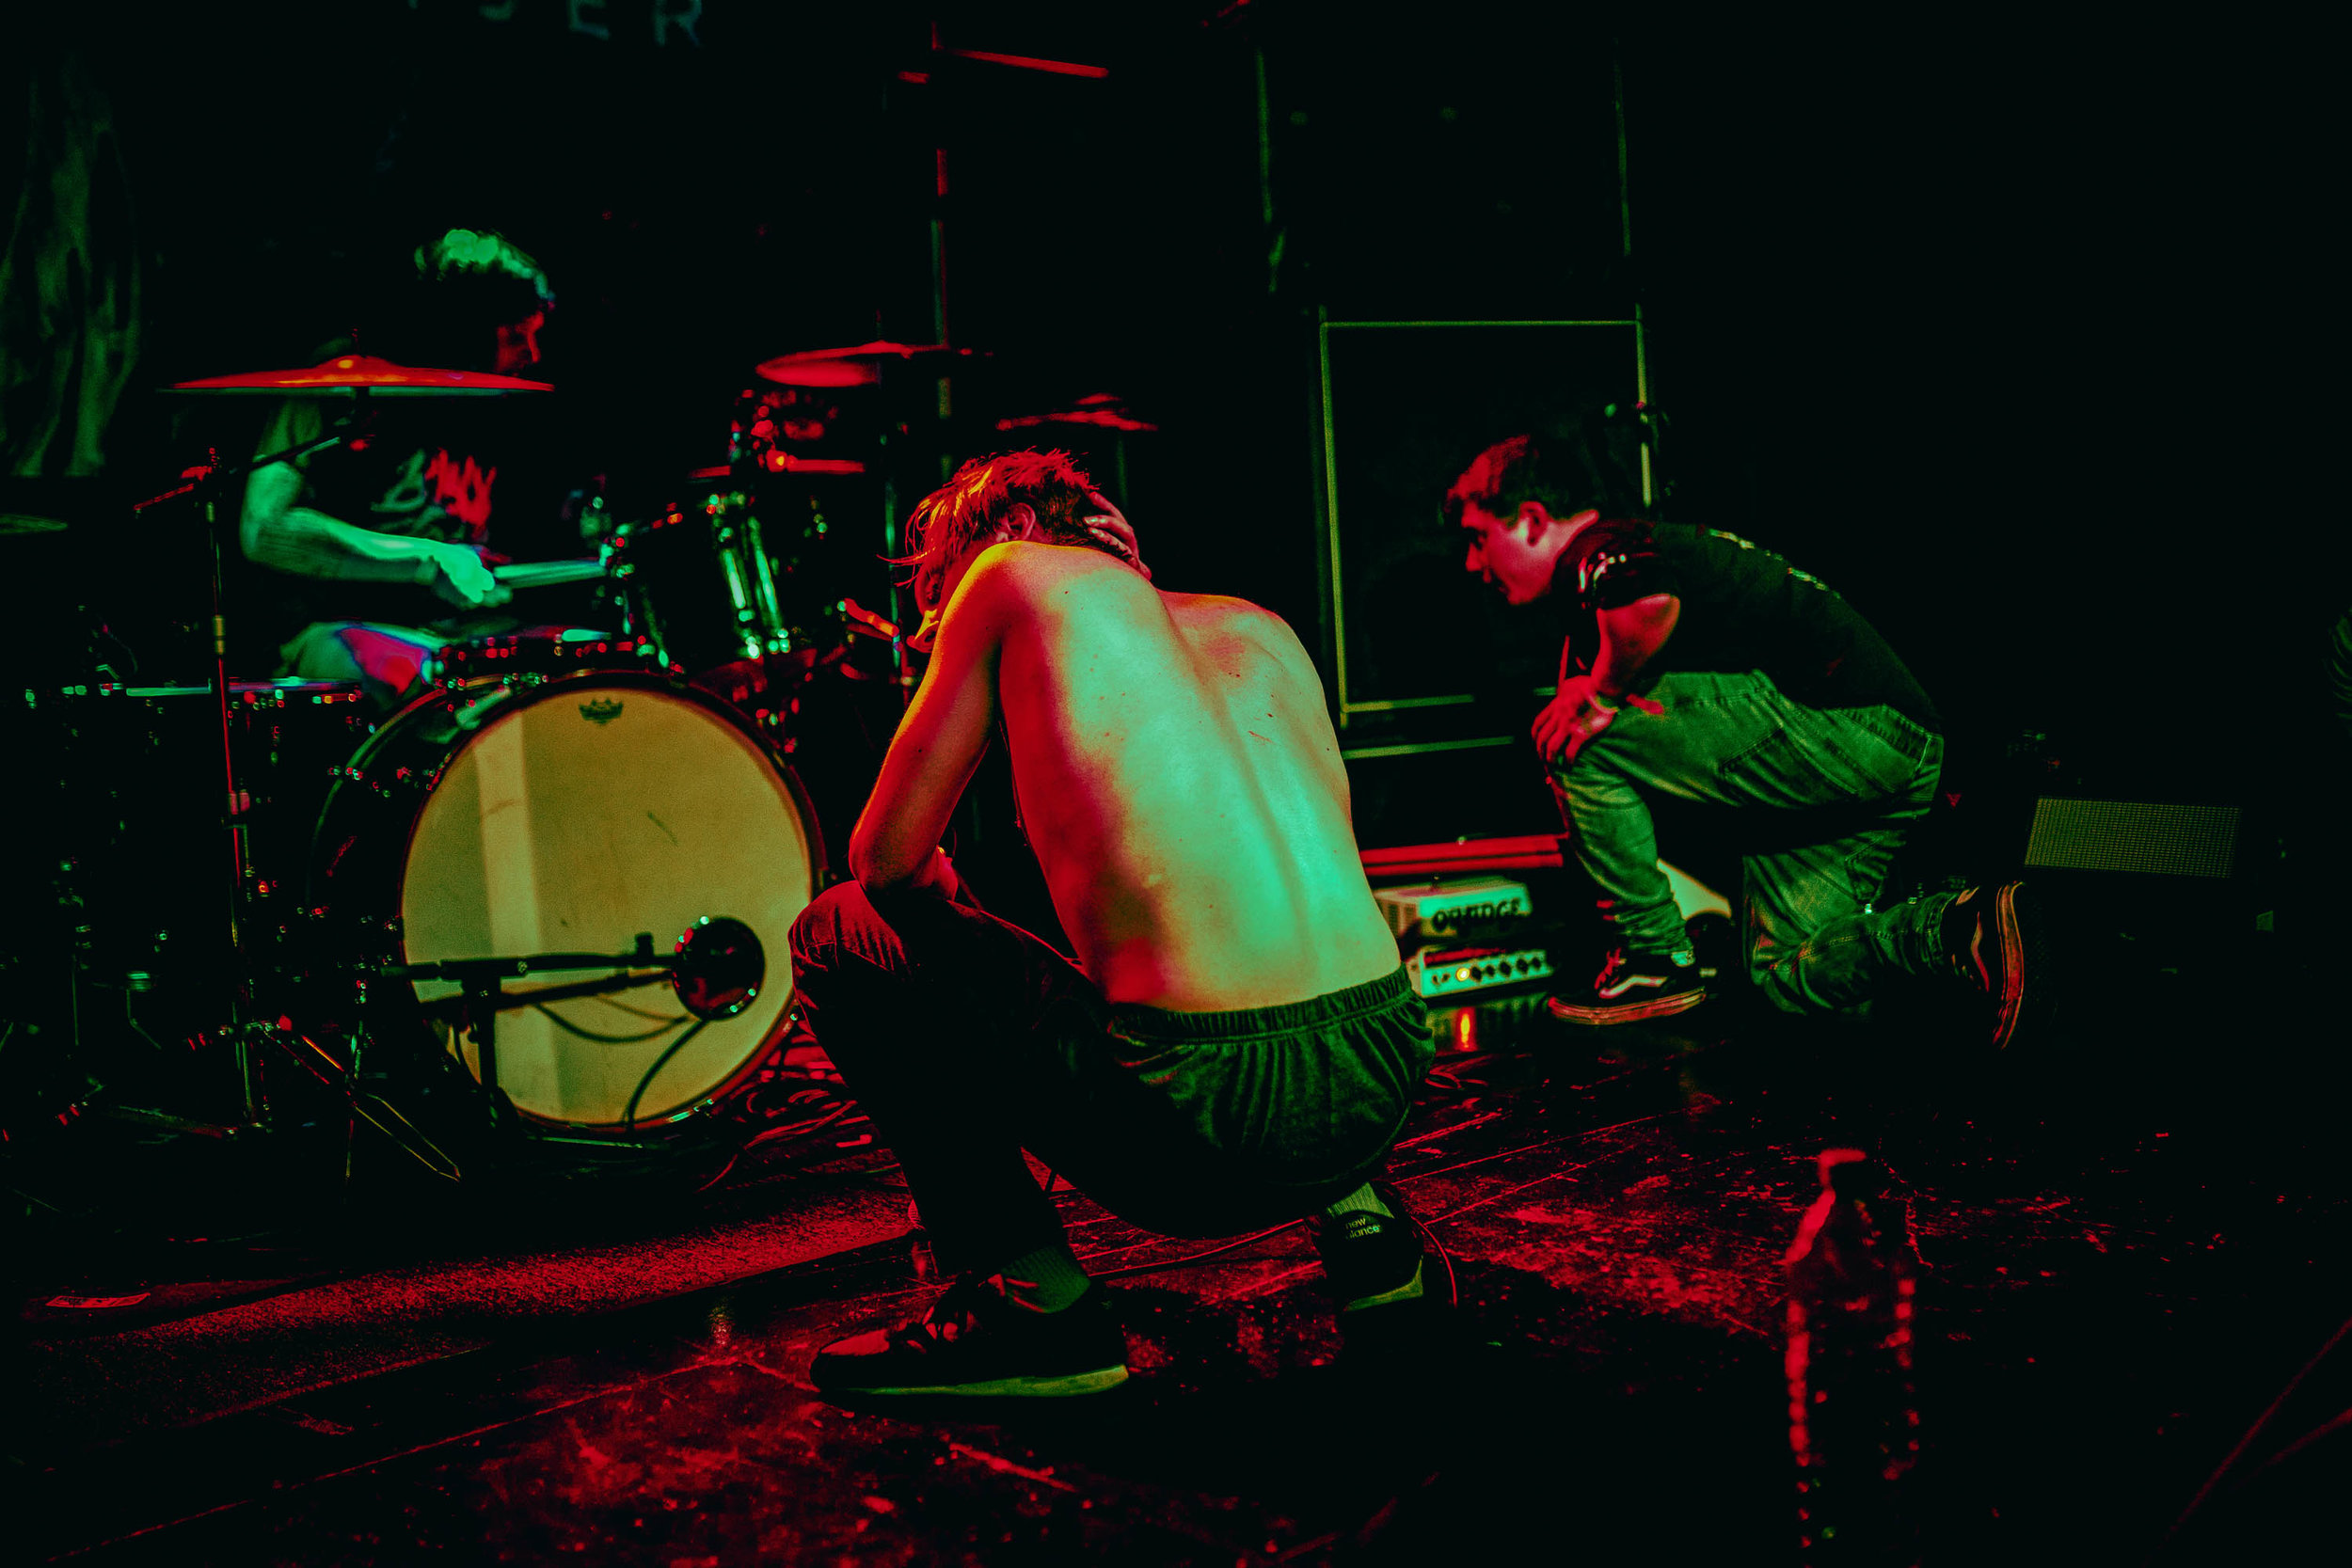 Sharkteeth Grinder - Boston Music Room - 13-12-2018 - London-22.jpg